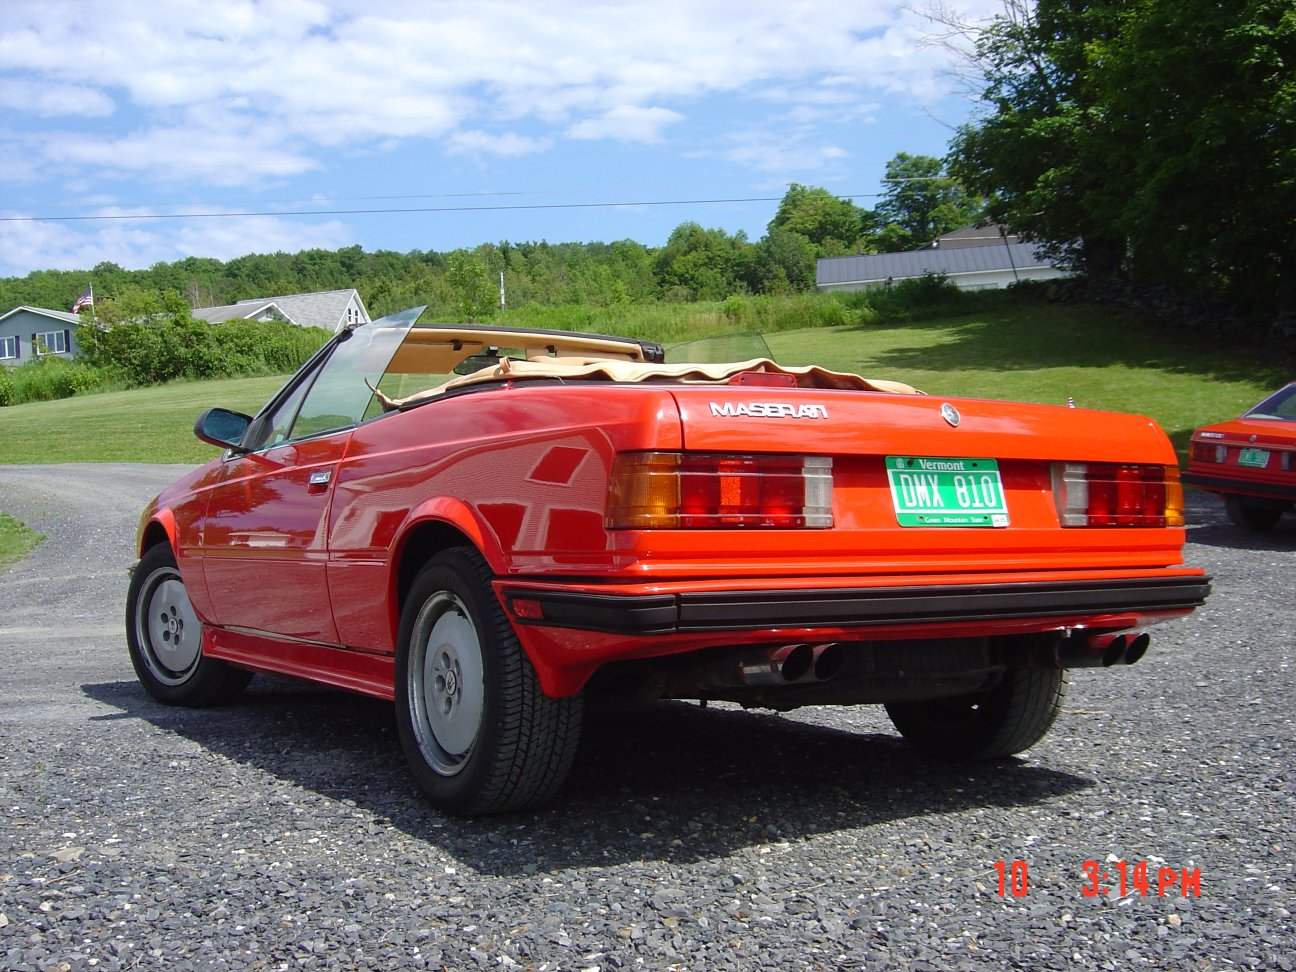 1990 Maserati Biturbo spider - pictures, information and ...